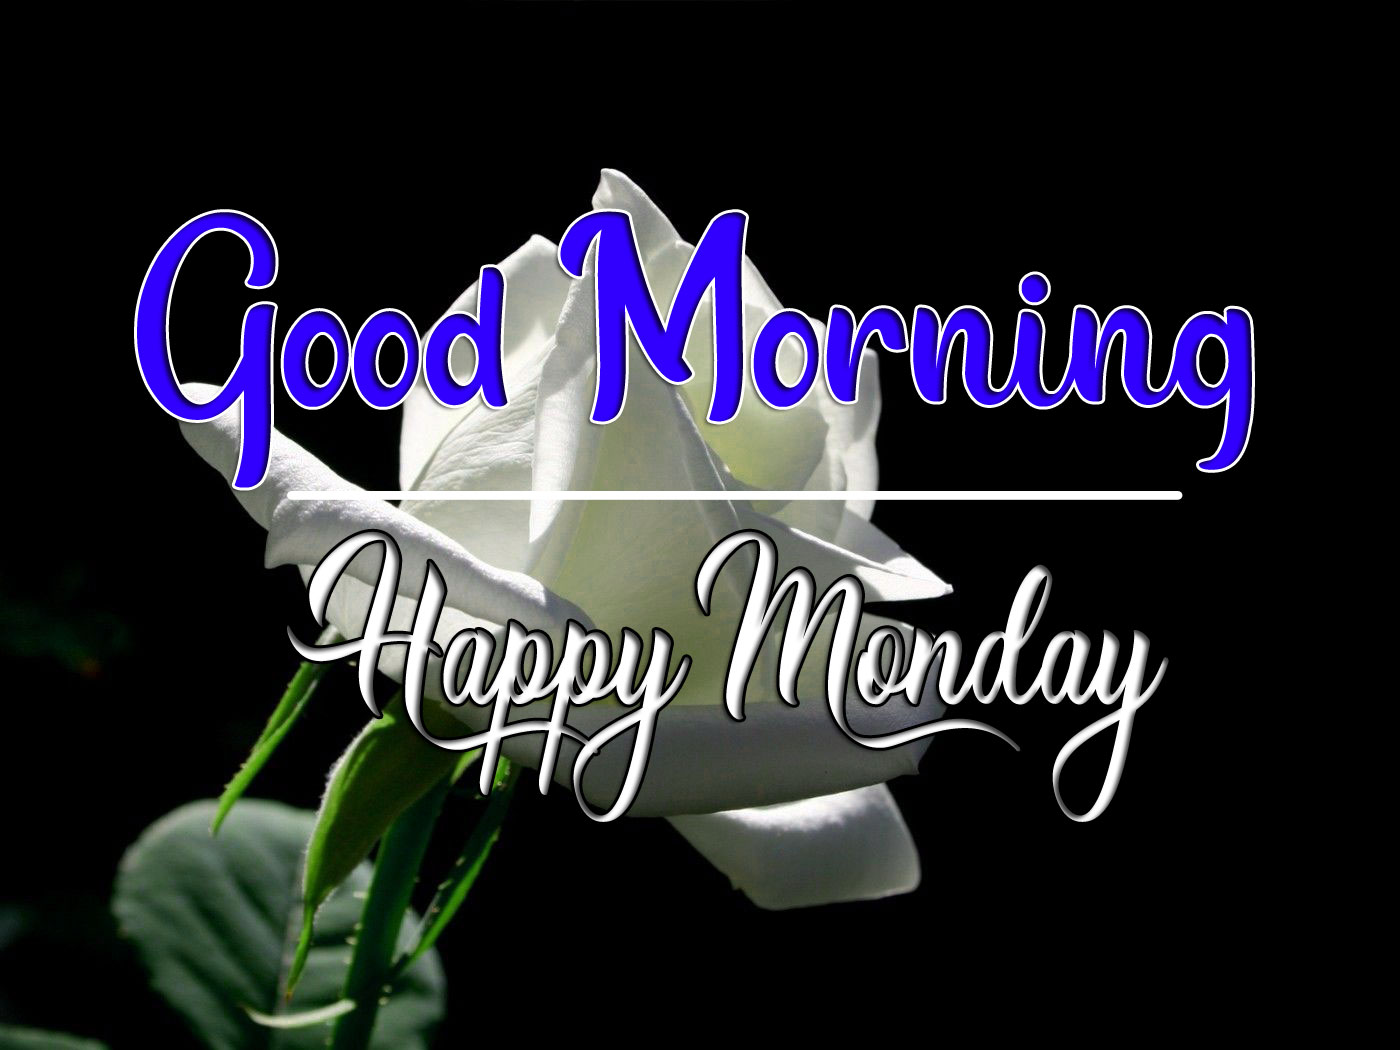 Monday Good Morning Wallpaper With Red Flower